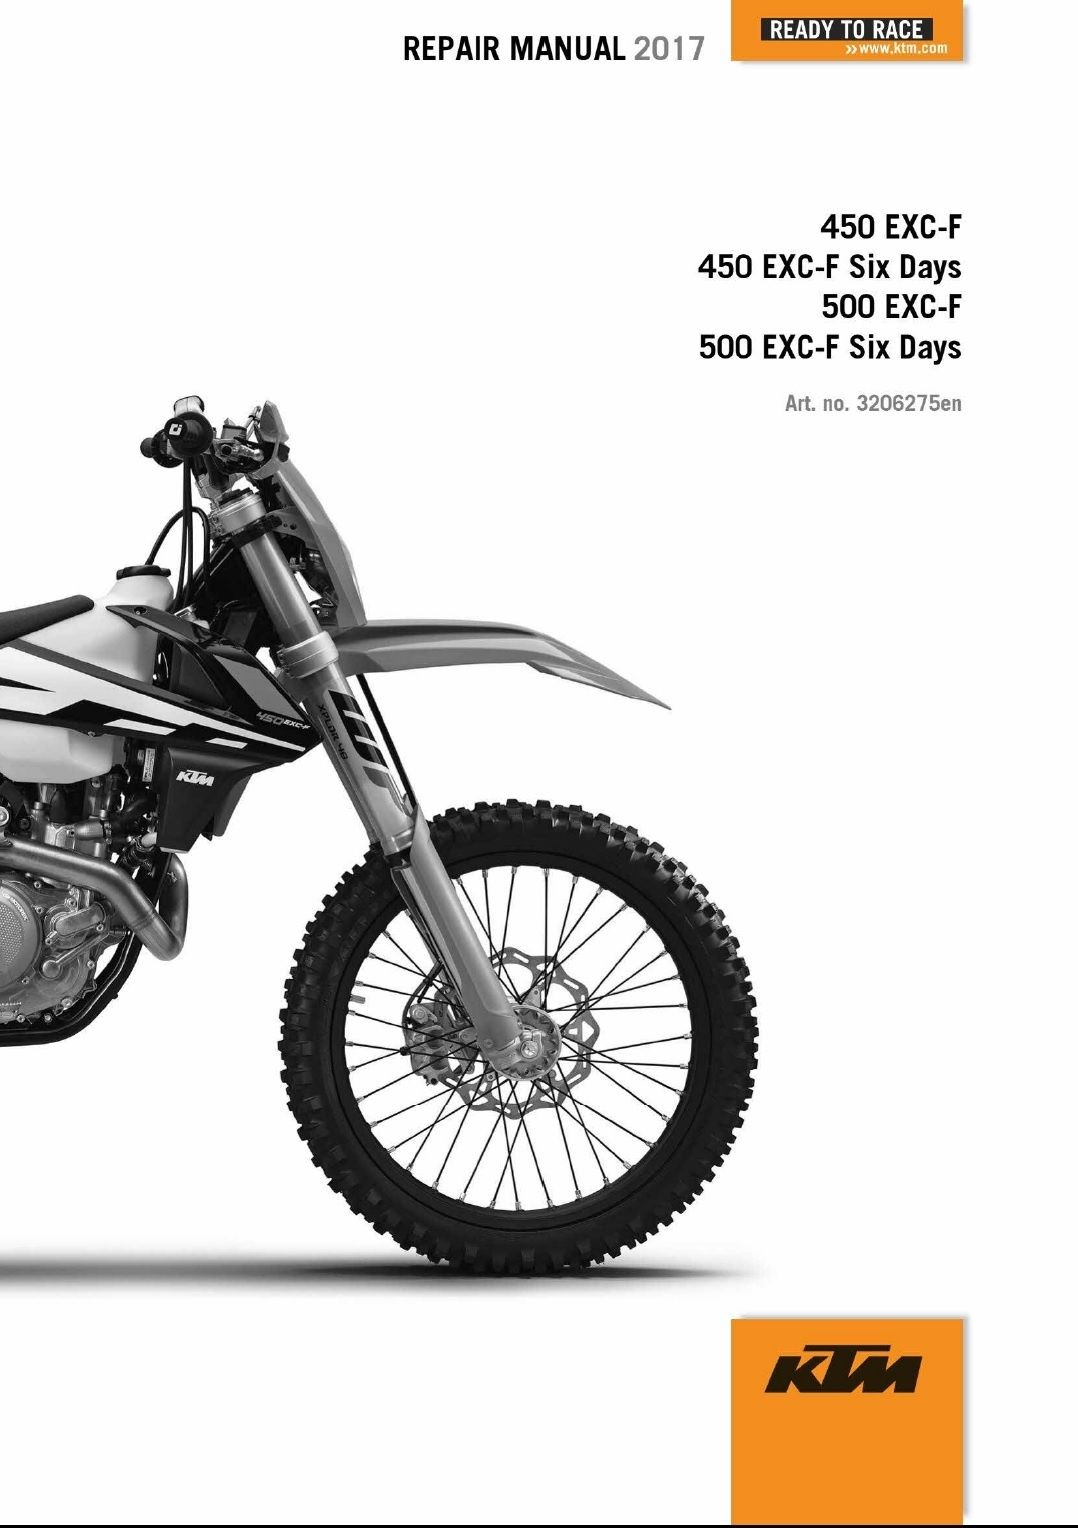 medium resolution of covers all models listed above all repairs a z this is a genuine ktm complete service repiar manual for 2017 ktm 450 500 exc f